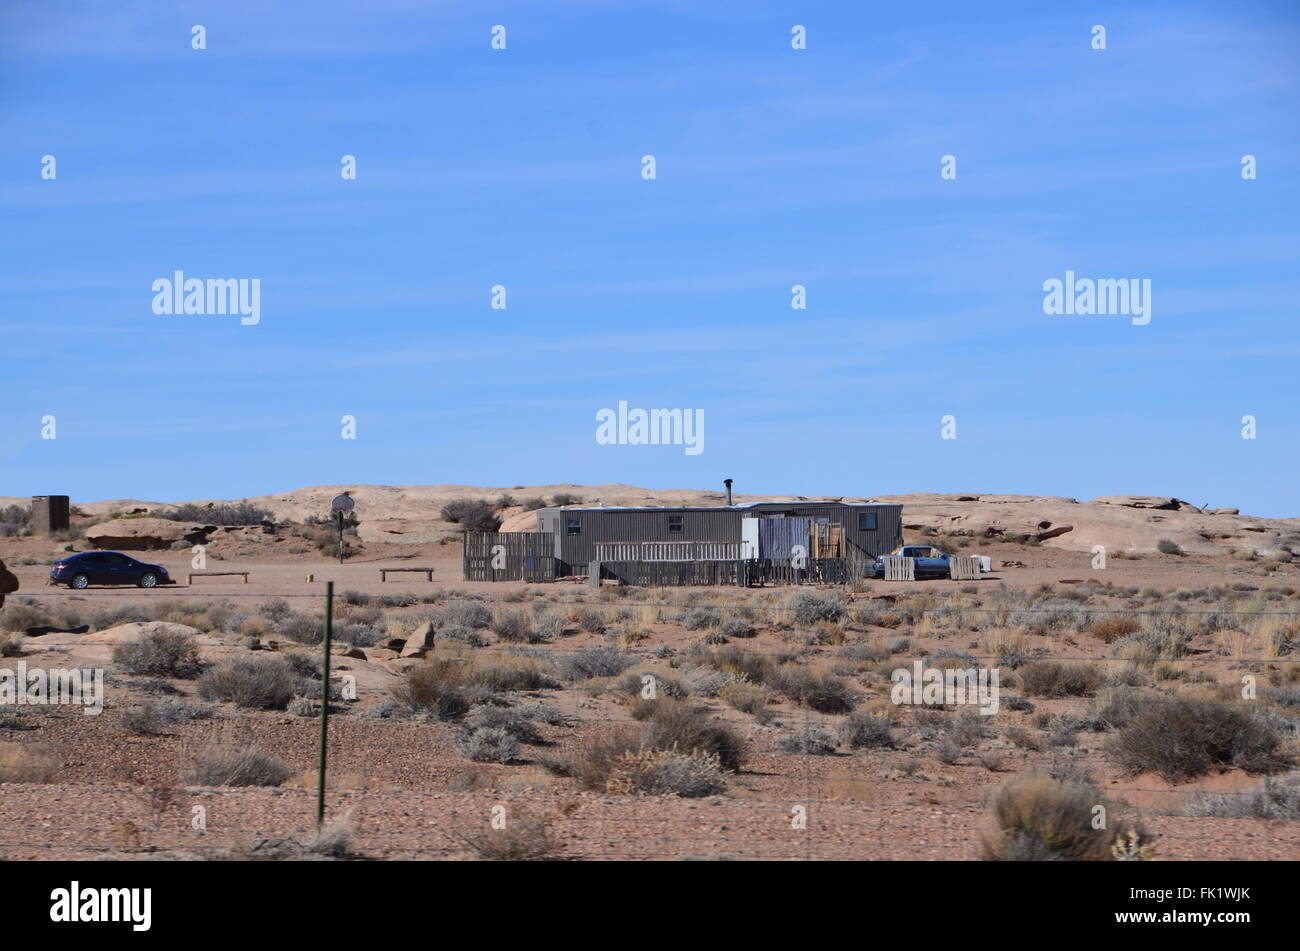 navajo indian reservation housing shacks poverty cars - Stock Image